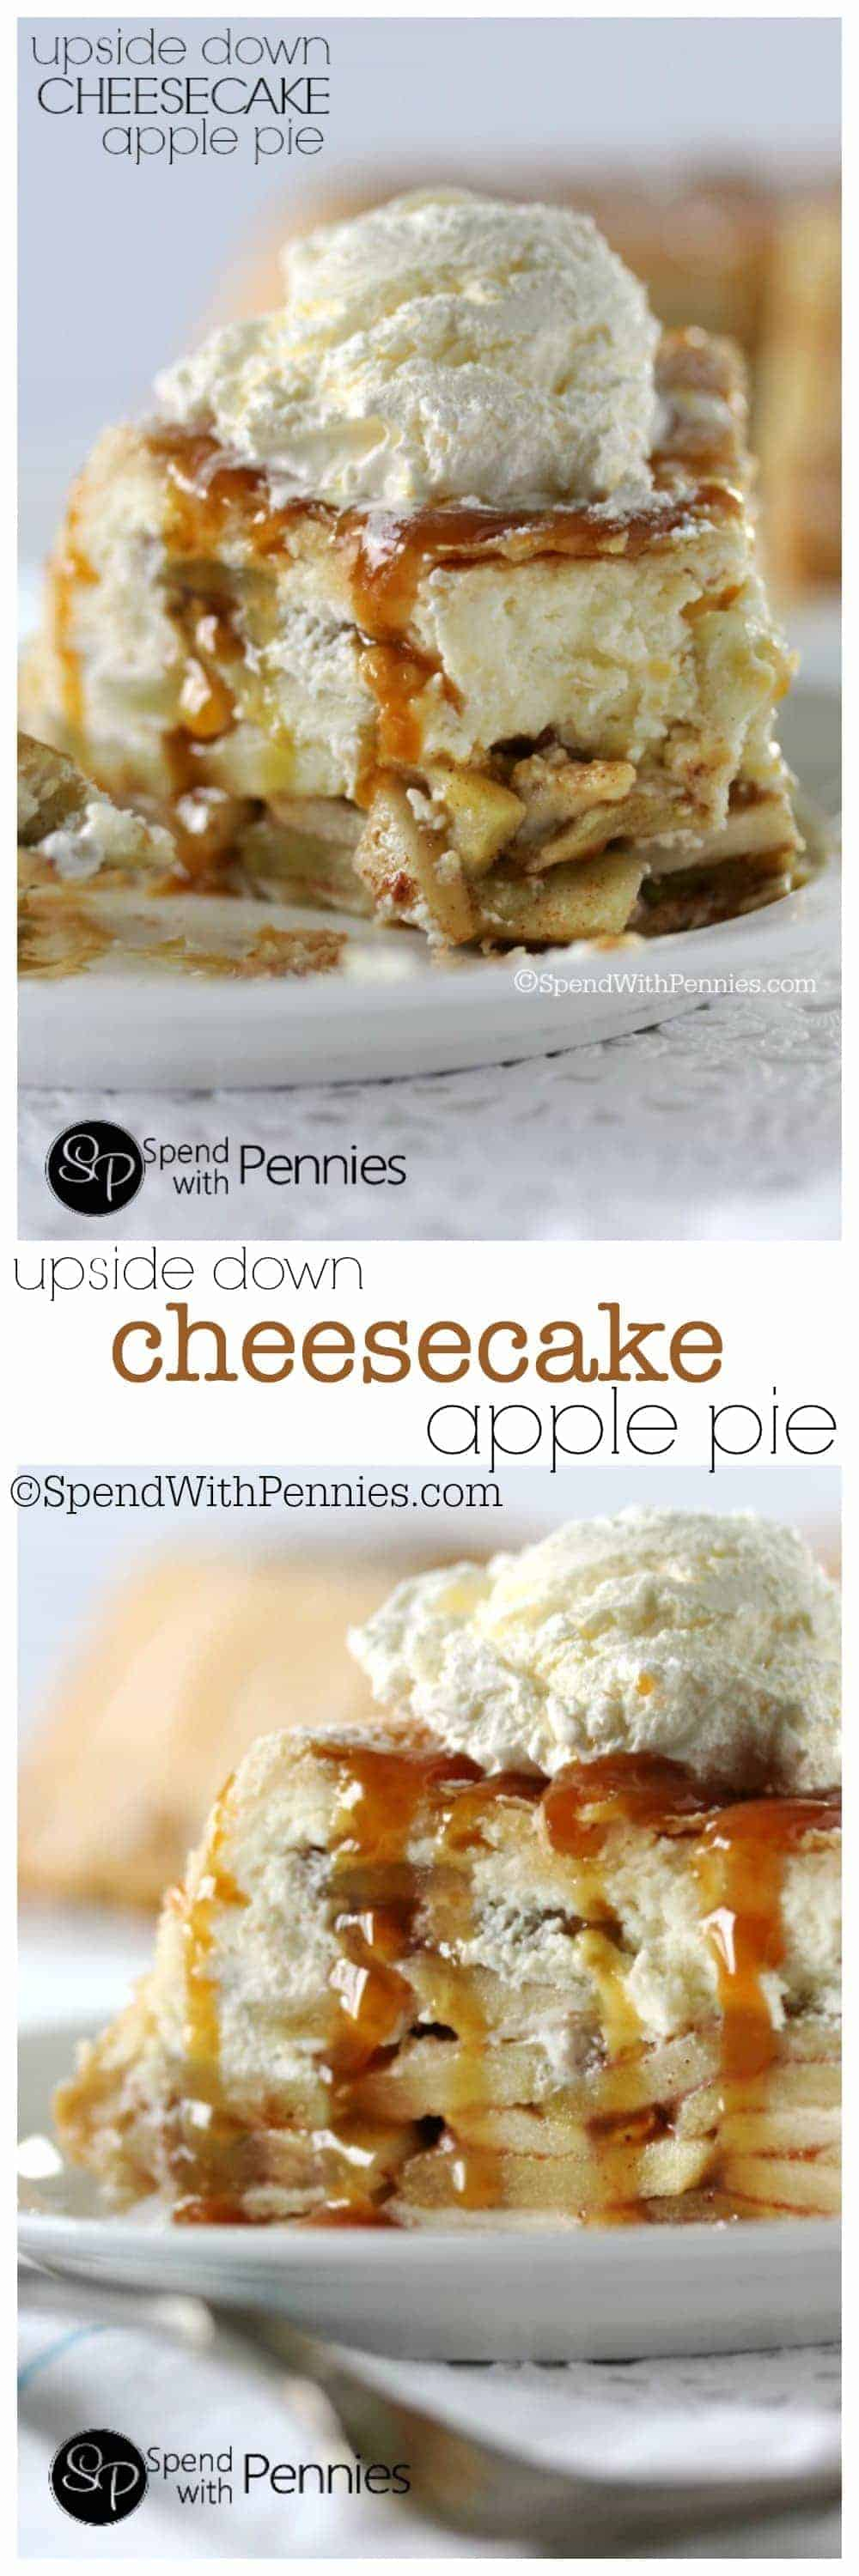 Upside Down Cheesecake Apple Pie! This really is the most amazing dessert ever! Cheesecake and apples make the most amazing pie filling wrapped in a flaky crust! Made by SpendWithPennies.com